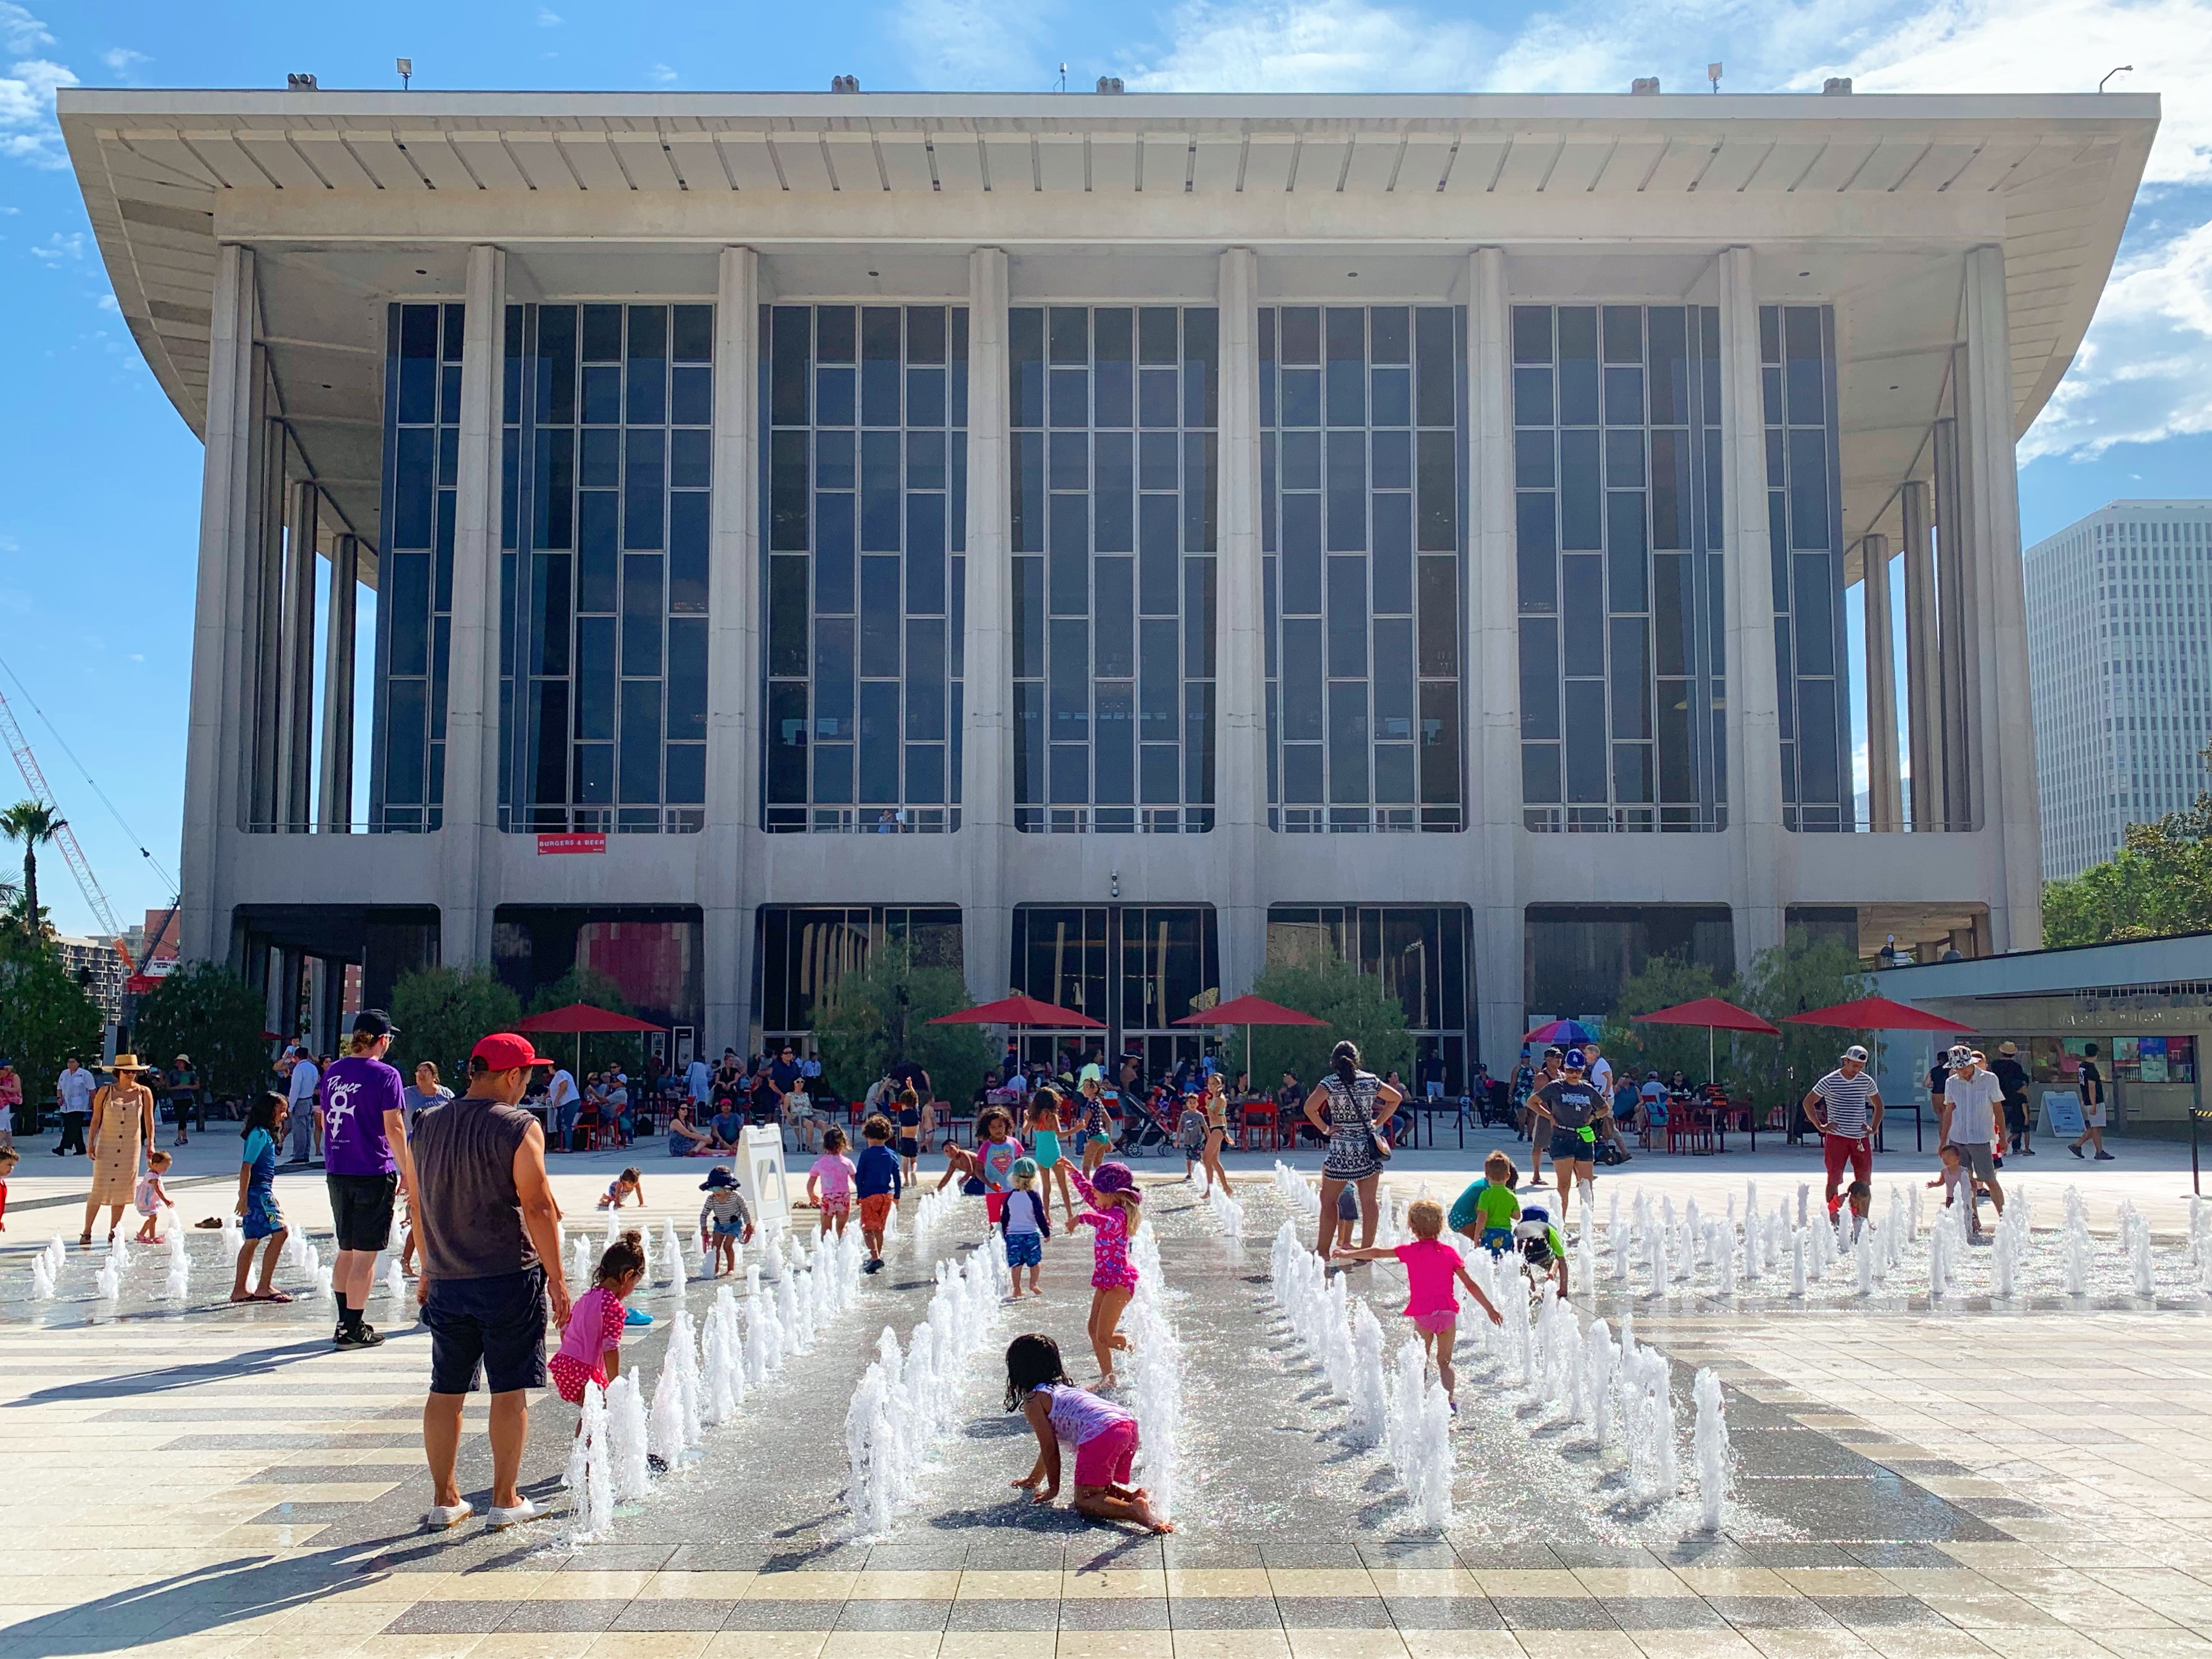 Children in colorful swimsuits play in a splash pad on white plaza in front of a dramatic midcentury performing arts center.